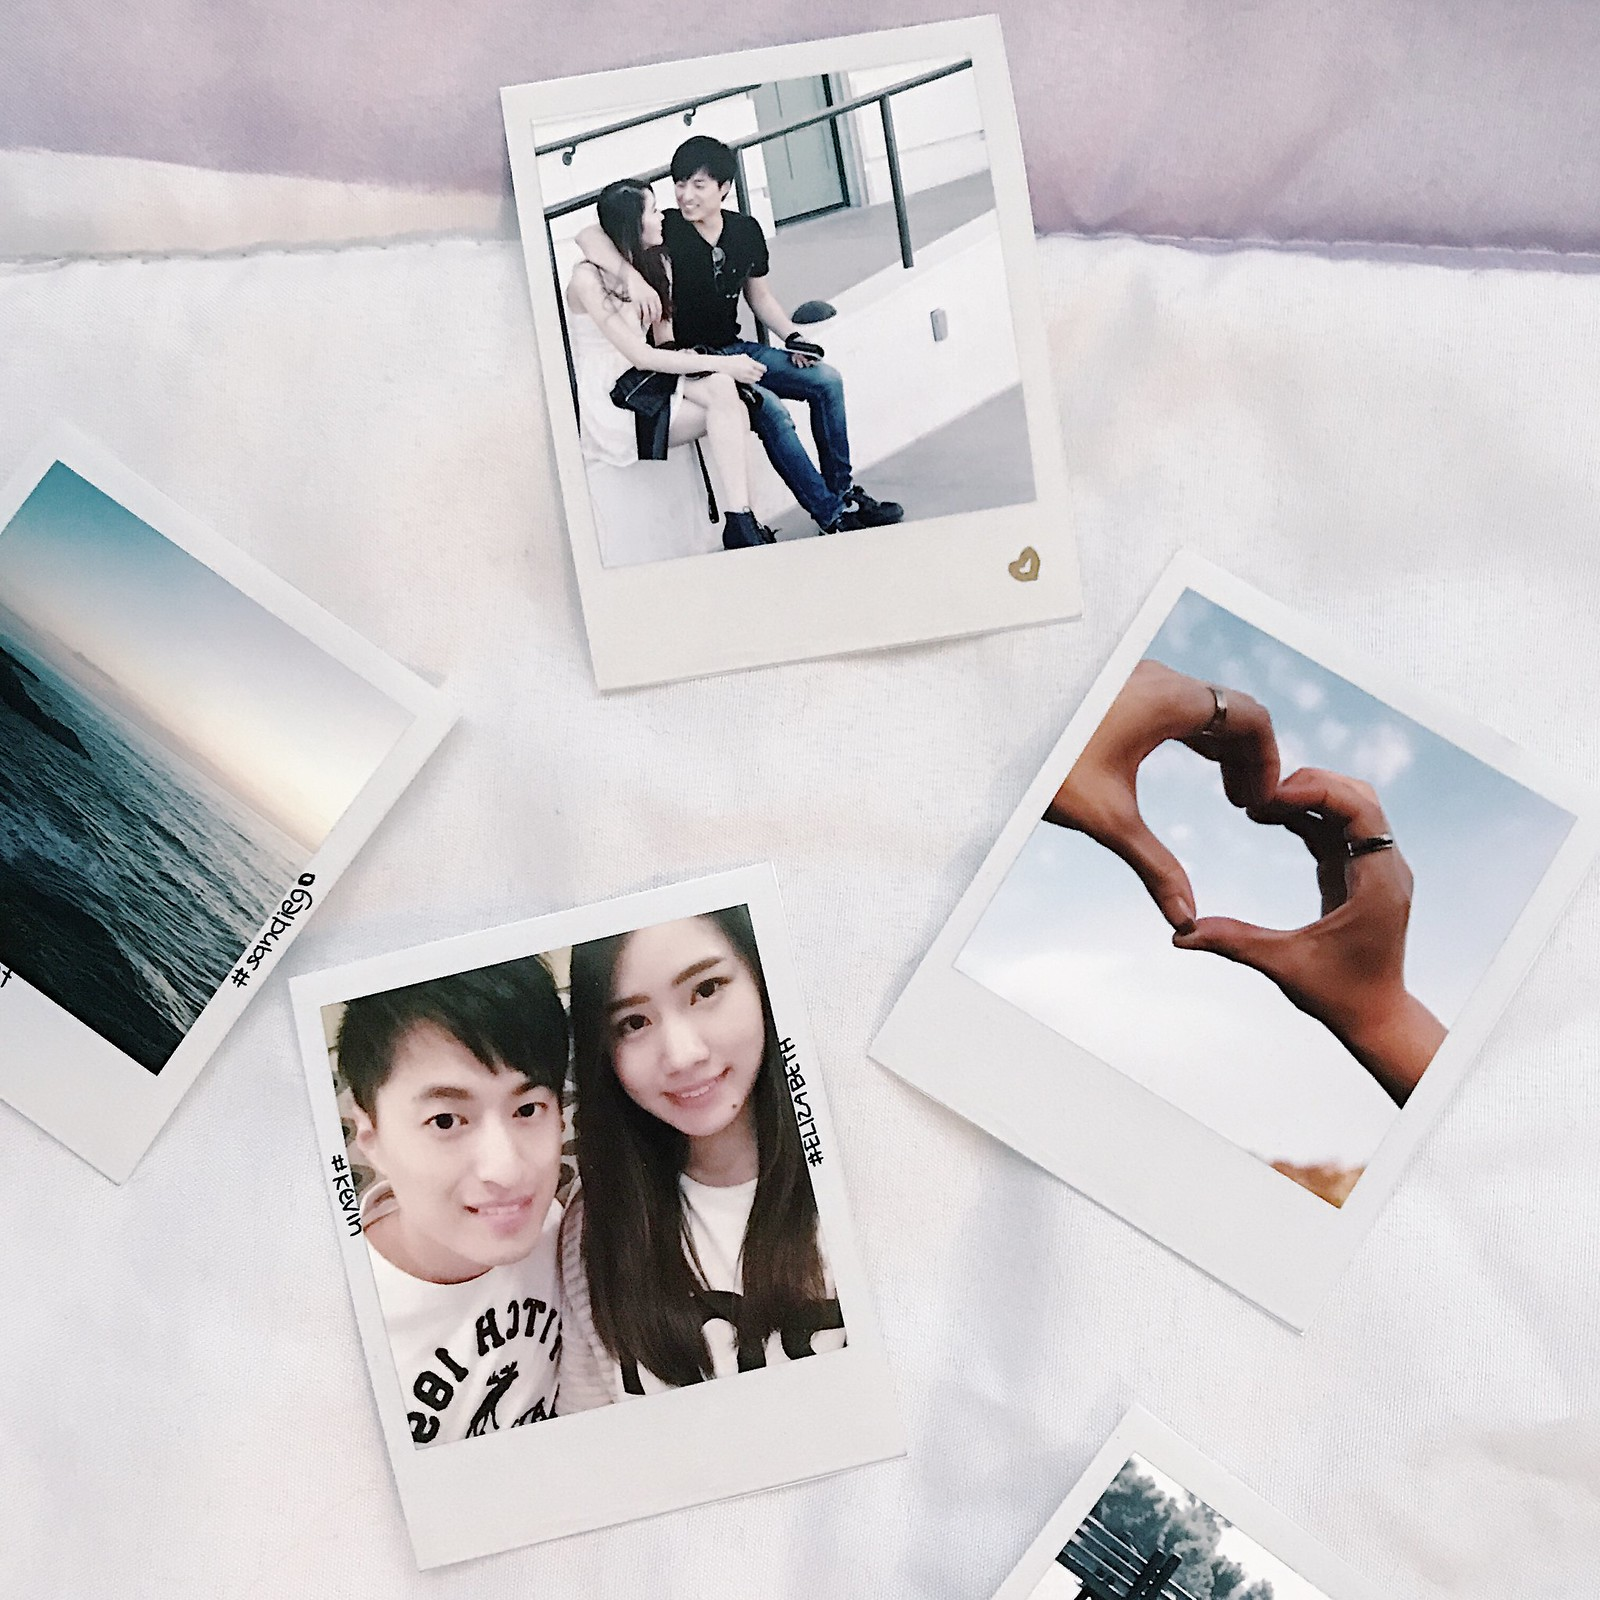 onthebed-flatlay-photography-instax-polaroid-love-couple